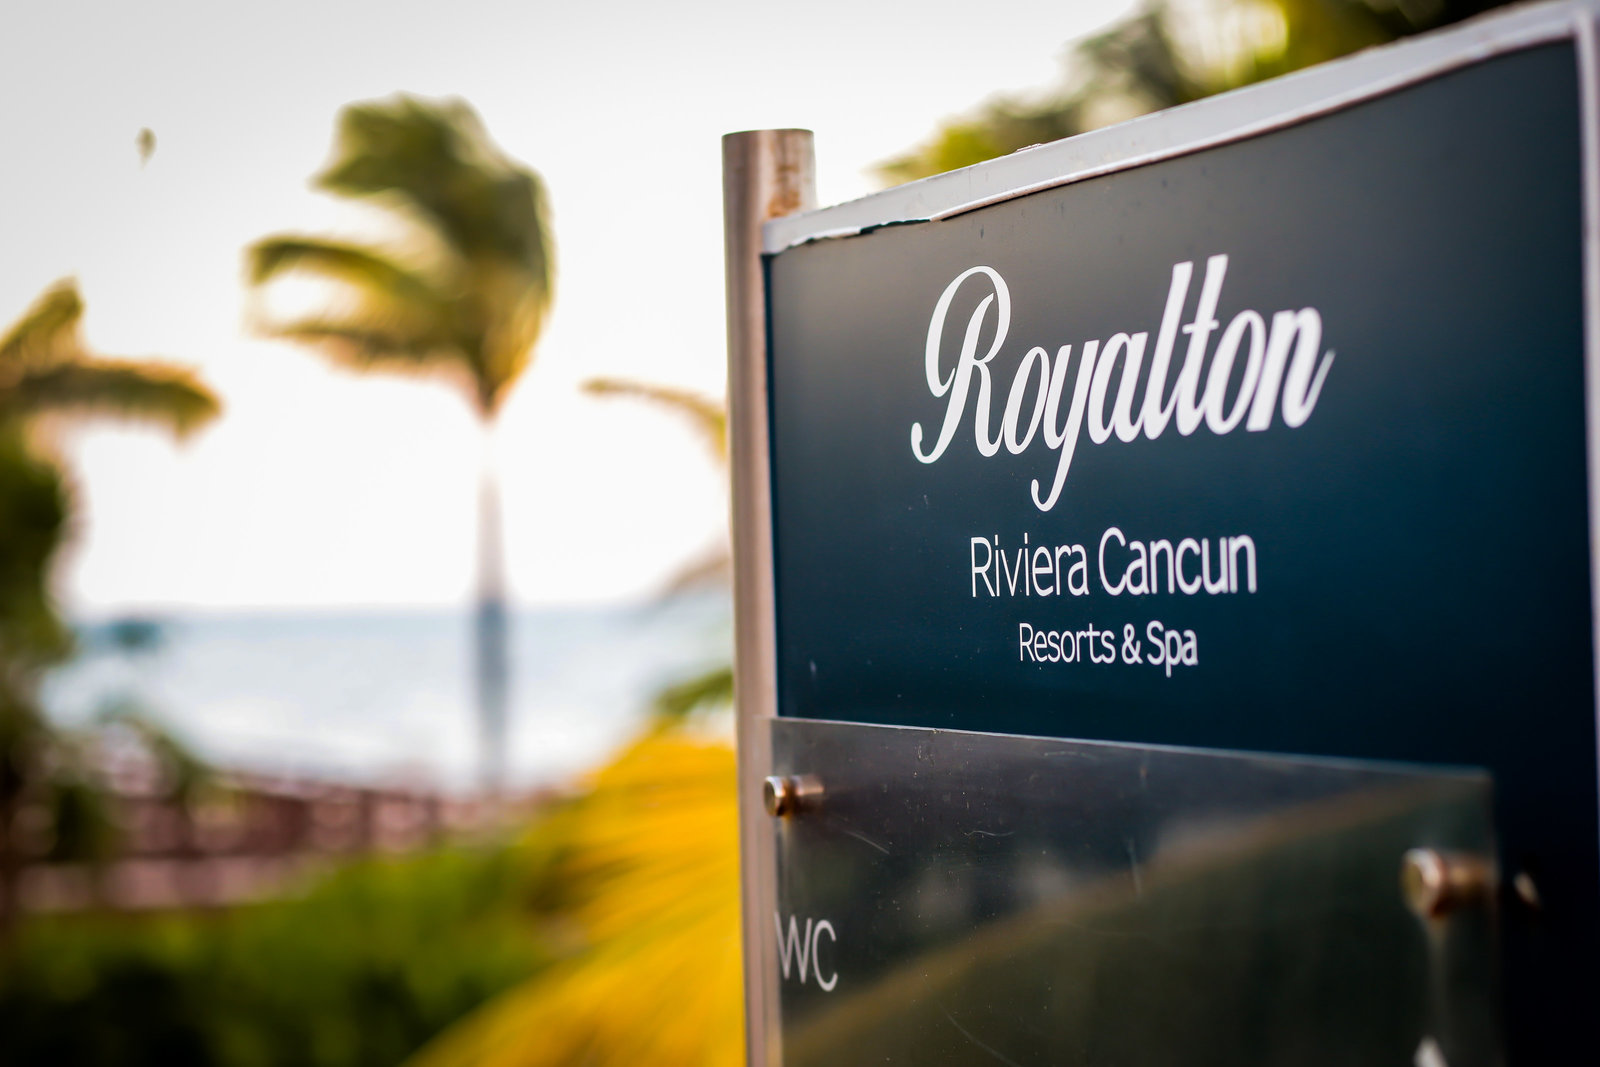 Royalton-rivera-cancun-wedding-405-brides-photographer